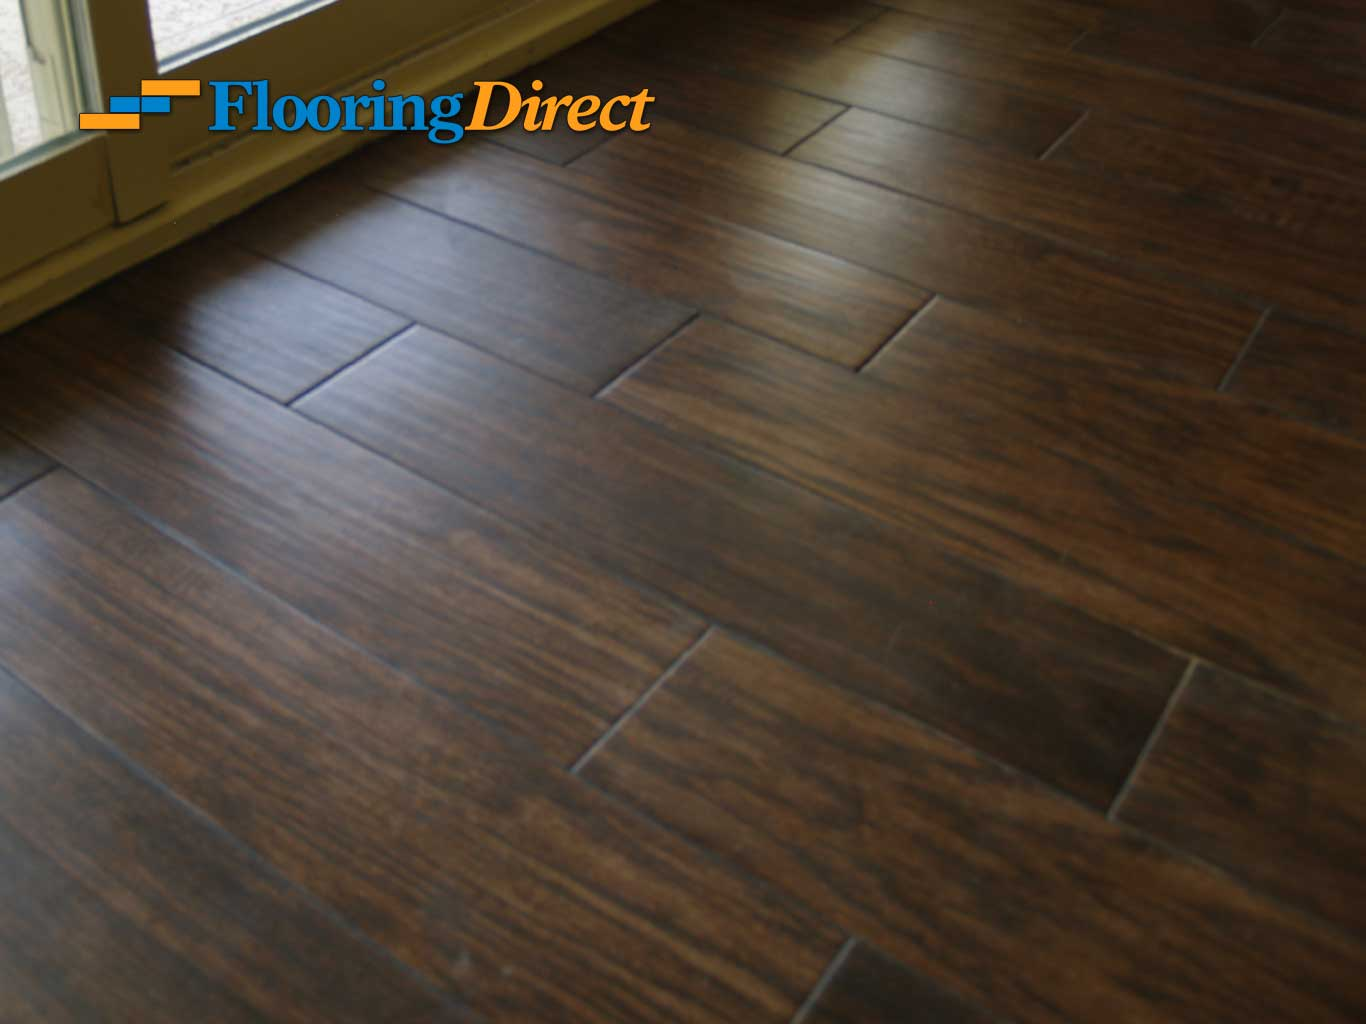 Vinyl Flooring Looks Like Ceramic Tile Wood Floors